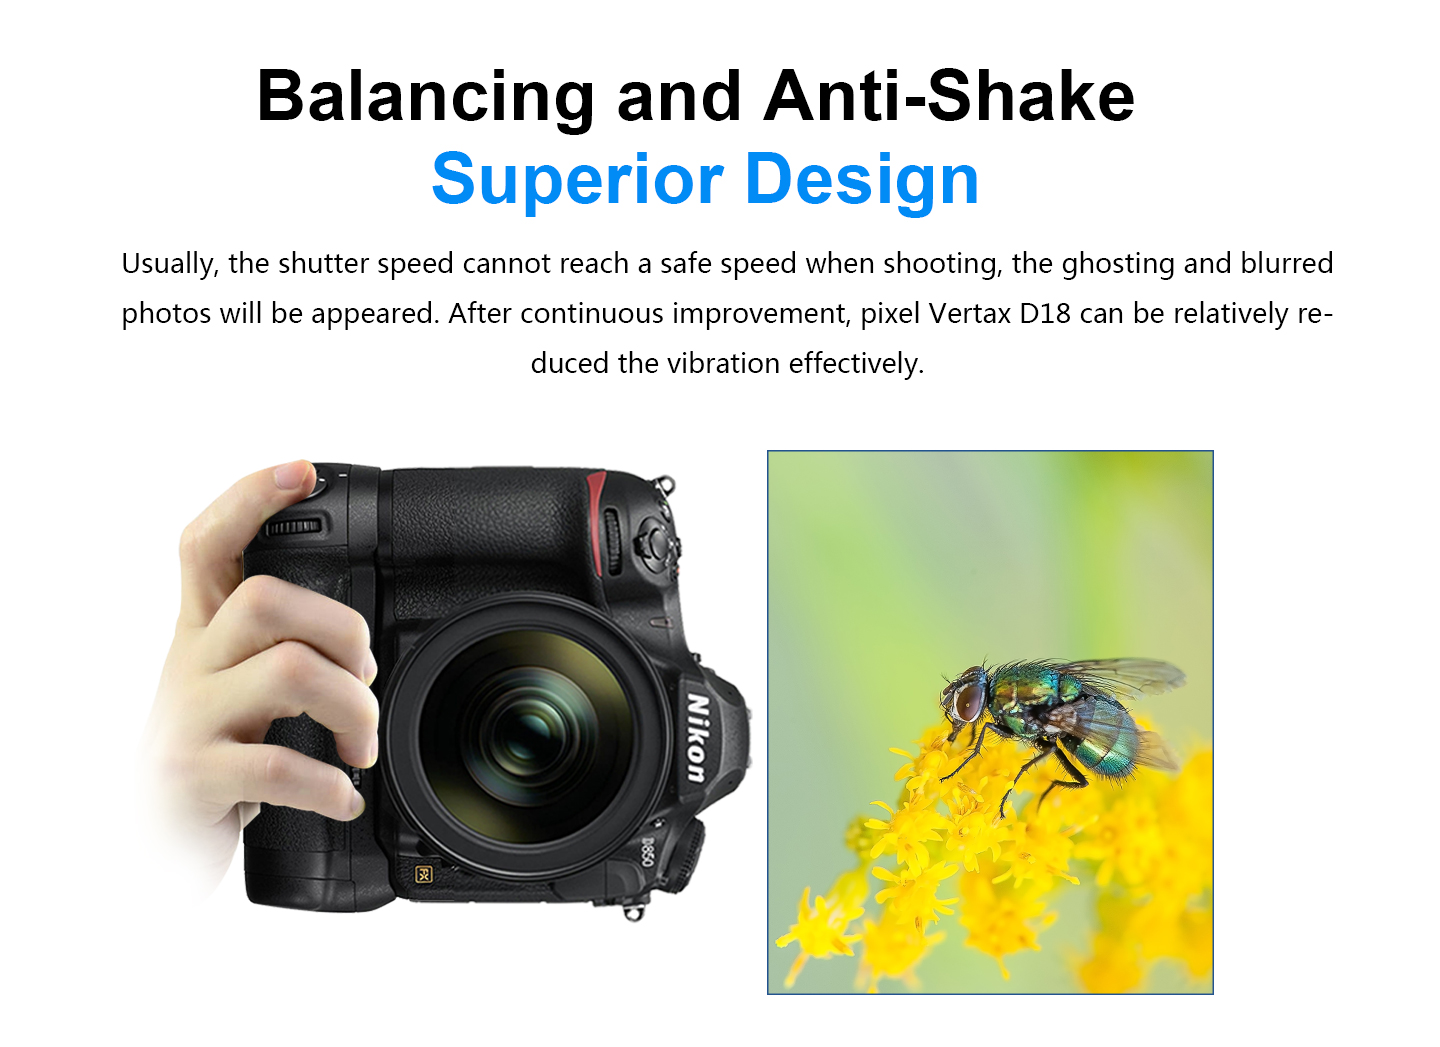 Balancing and Anti-Shake Superior Design